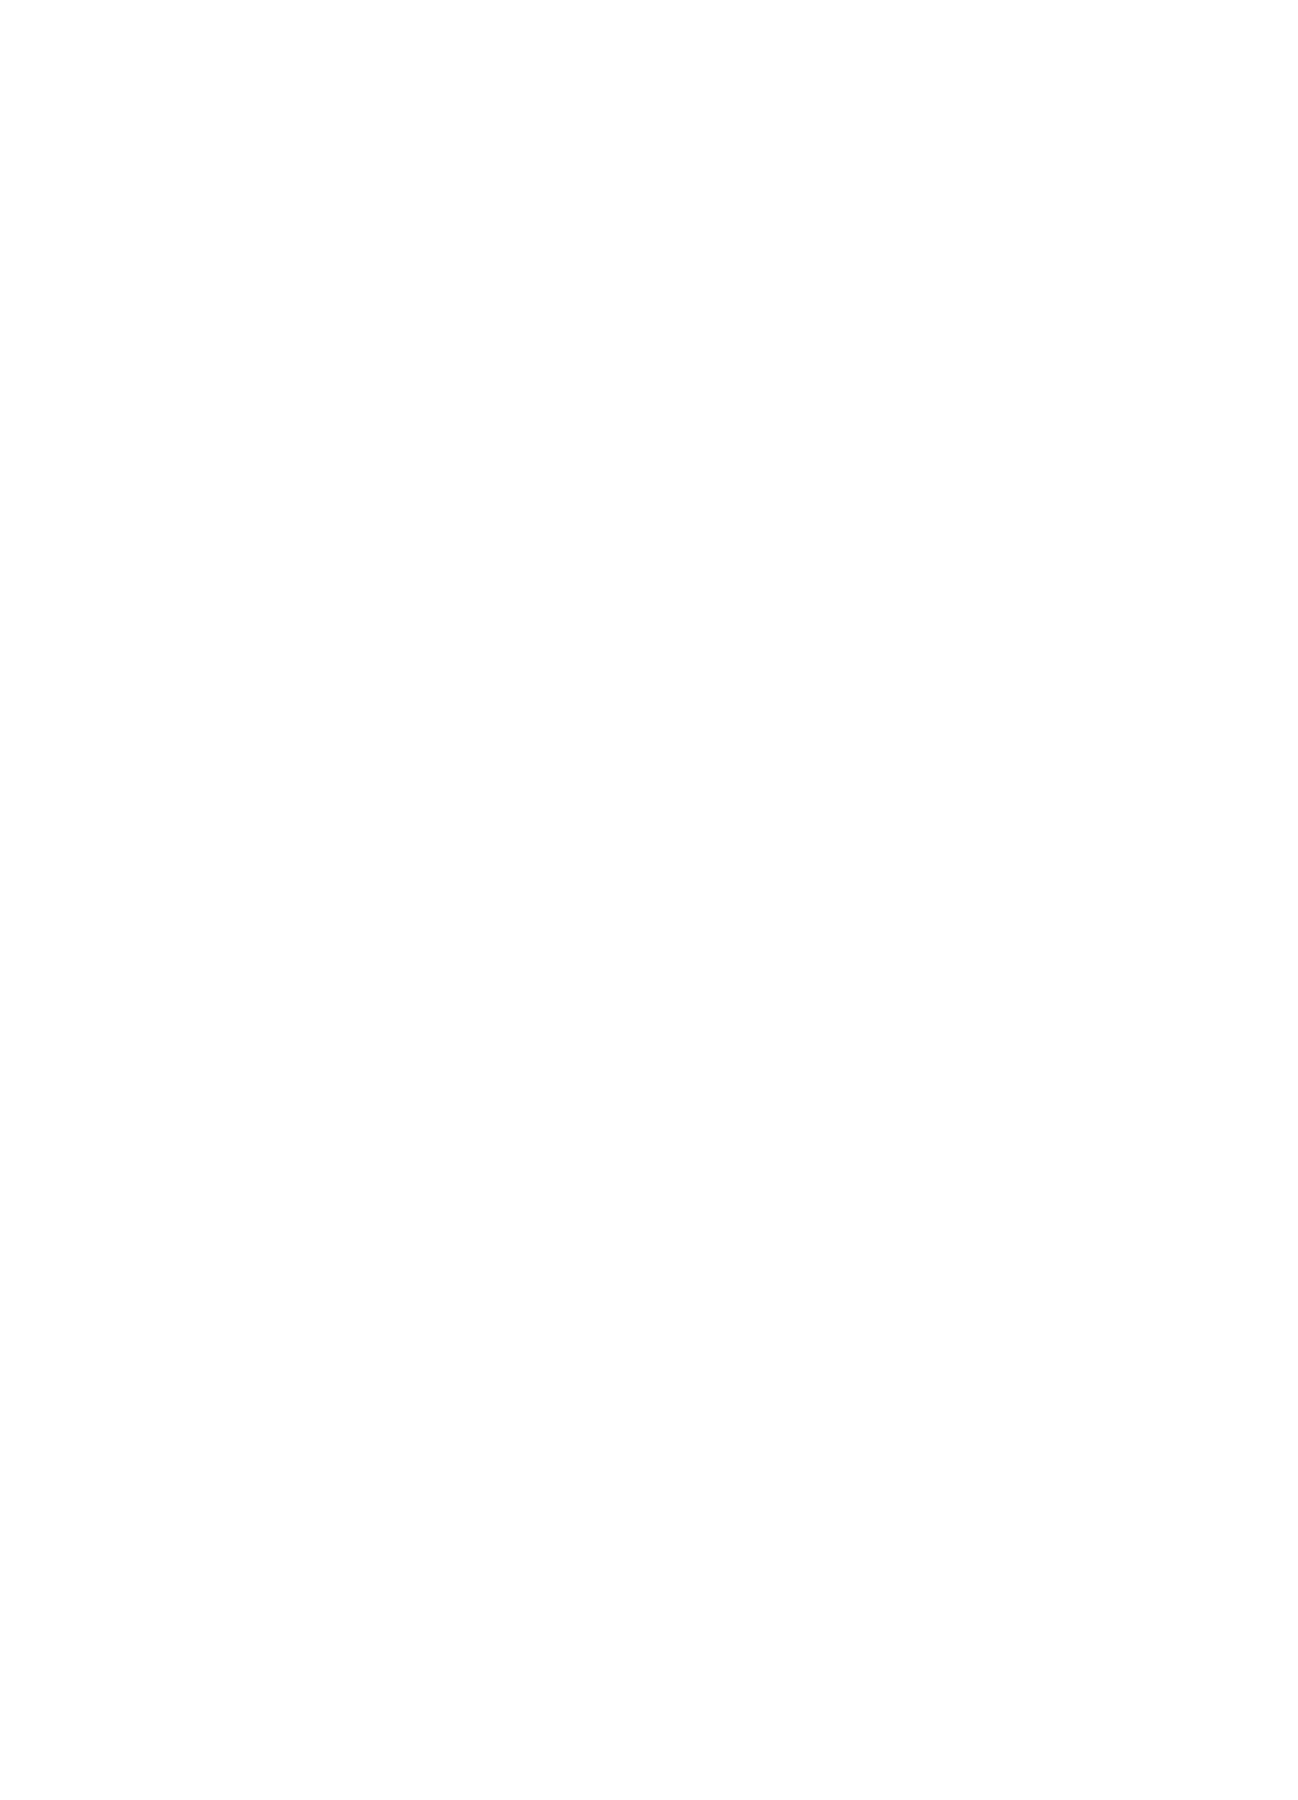 banner royalty free library Buddha clipart smiling buddha. Laughing yoga az tempe